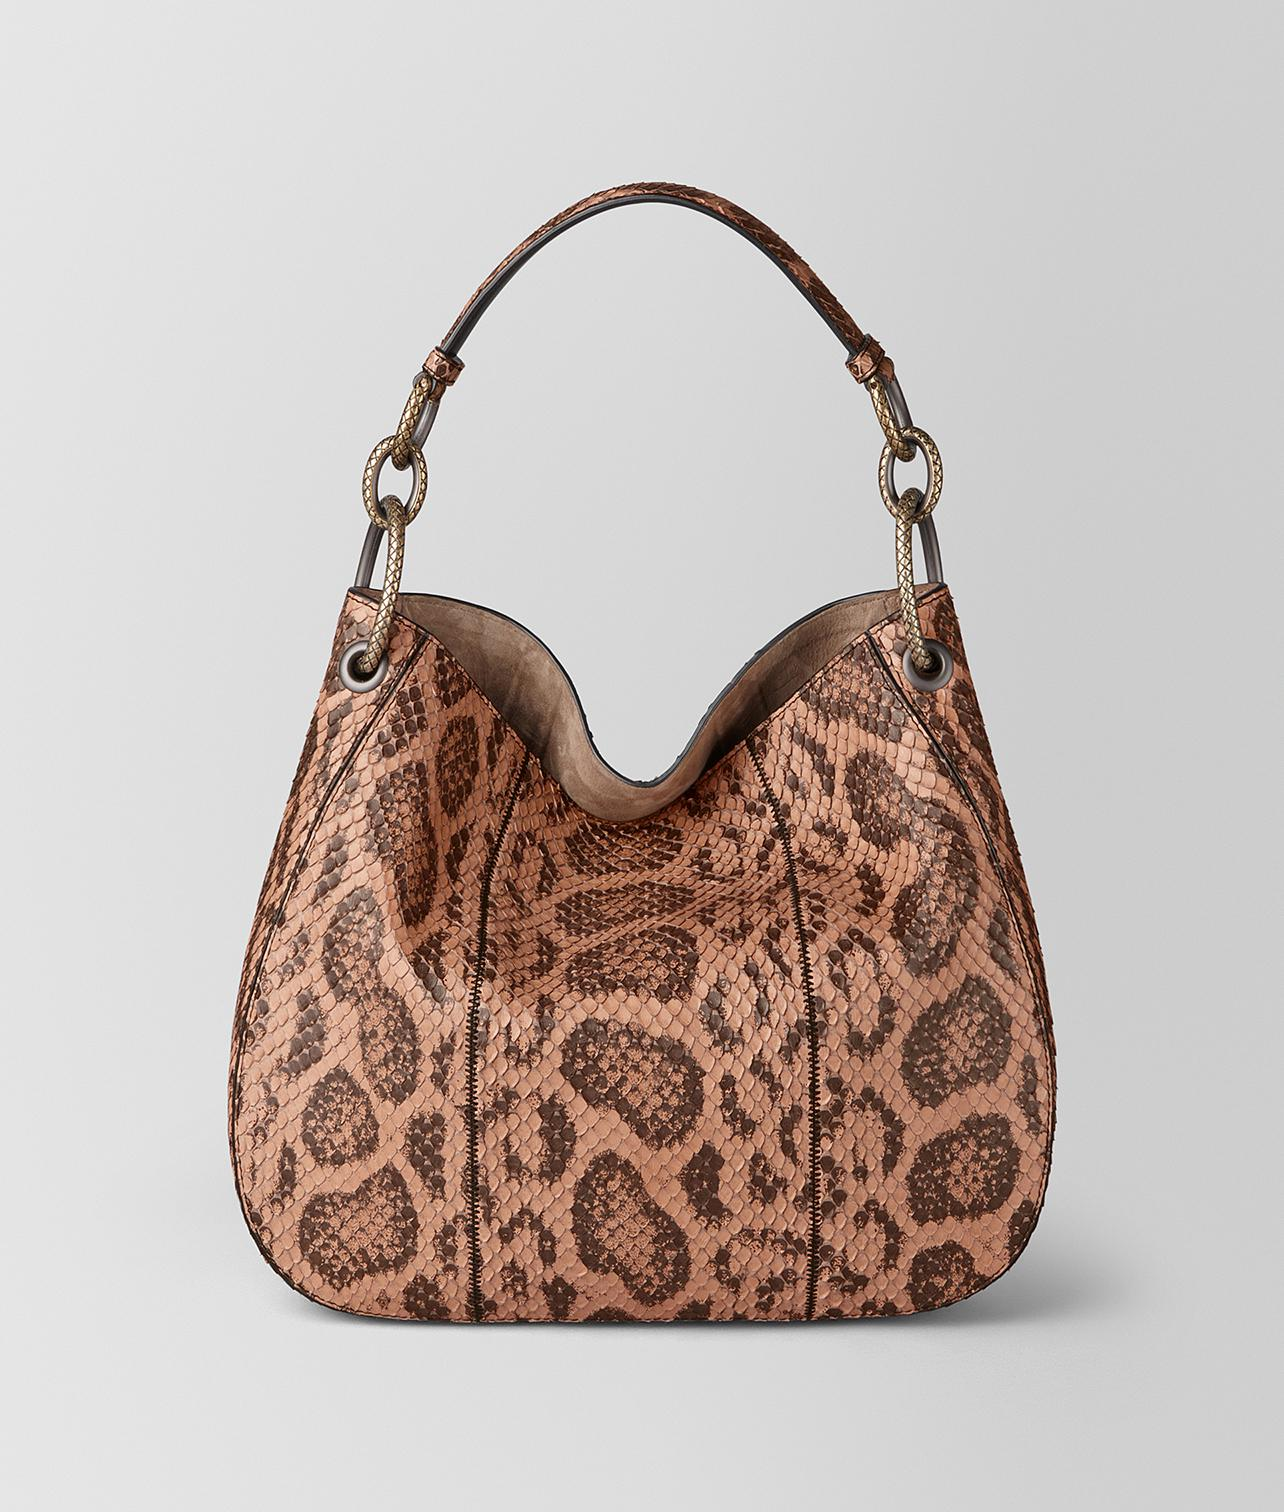 71b6fa3b7051 Bottega Veneta Dahlia Anaconda Loop Bag in Brown - Lyst